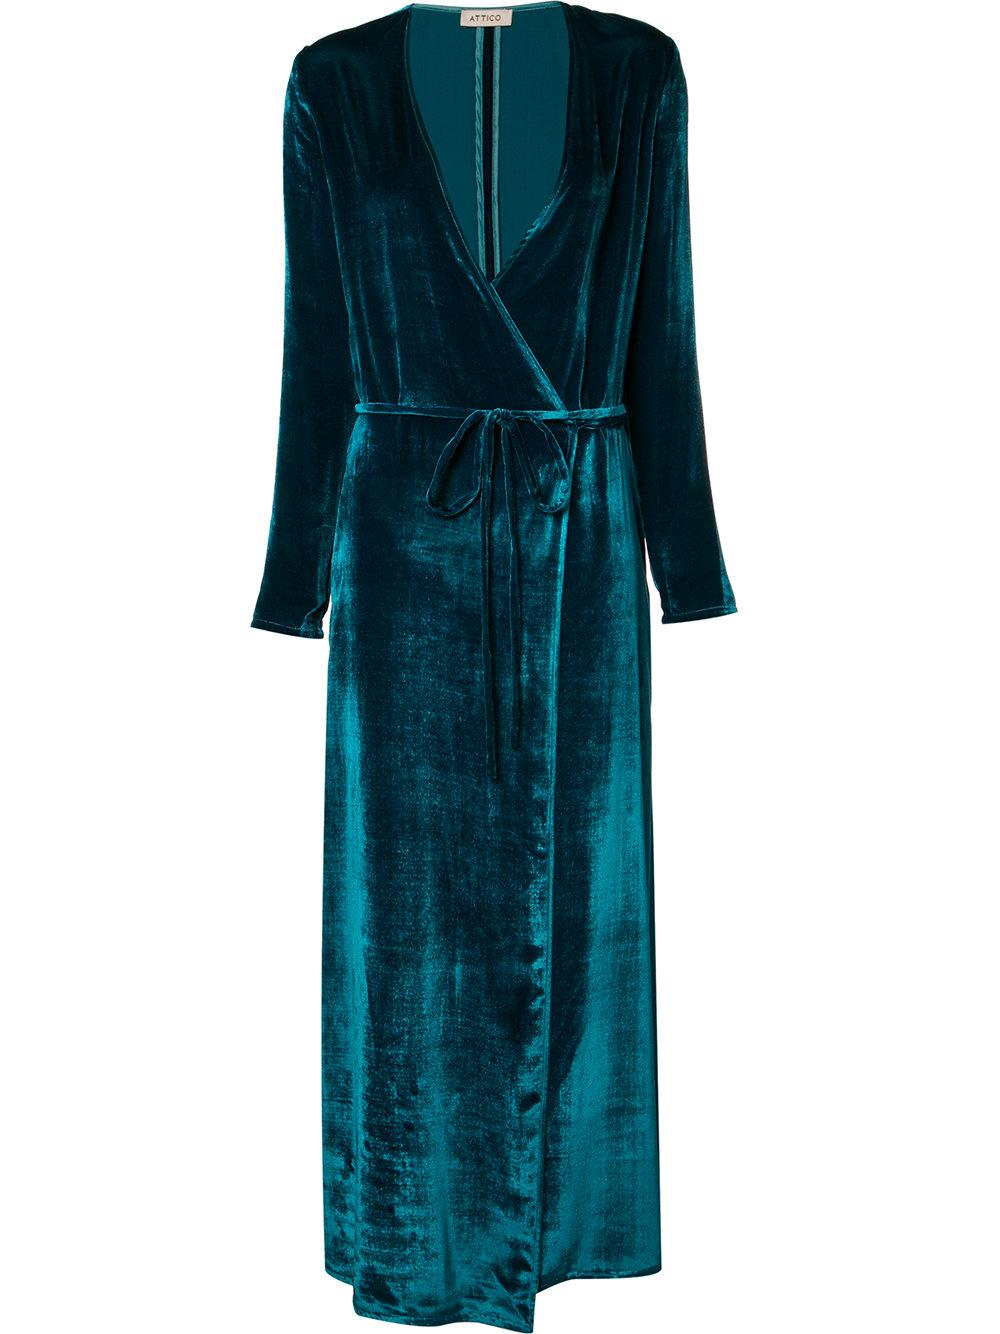 Attico Turquoise Velvet Robe Dress In Blue Save 40 Lyst